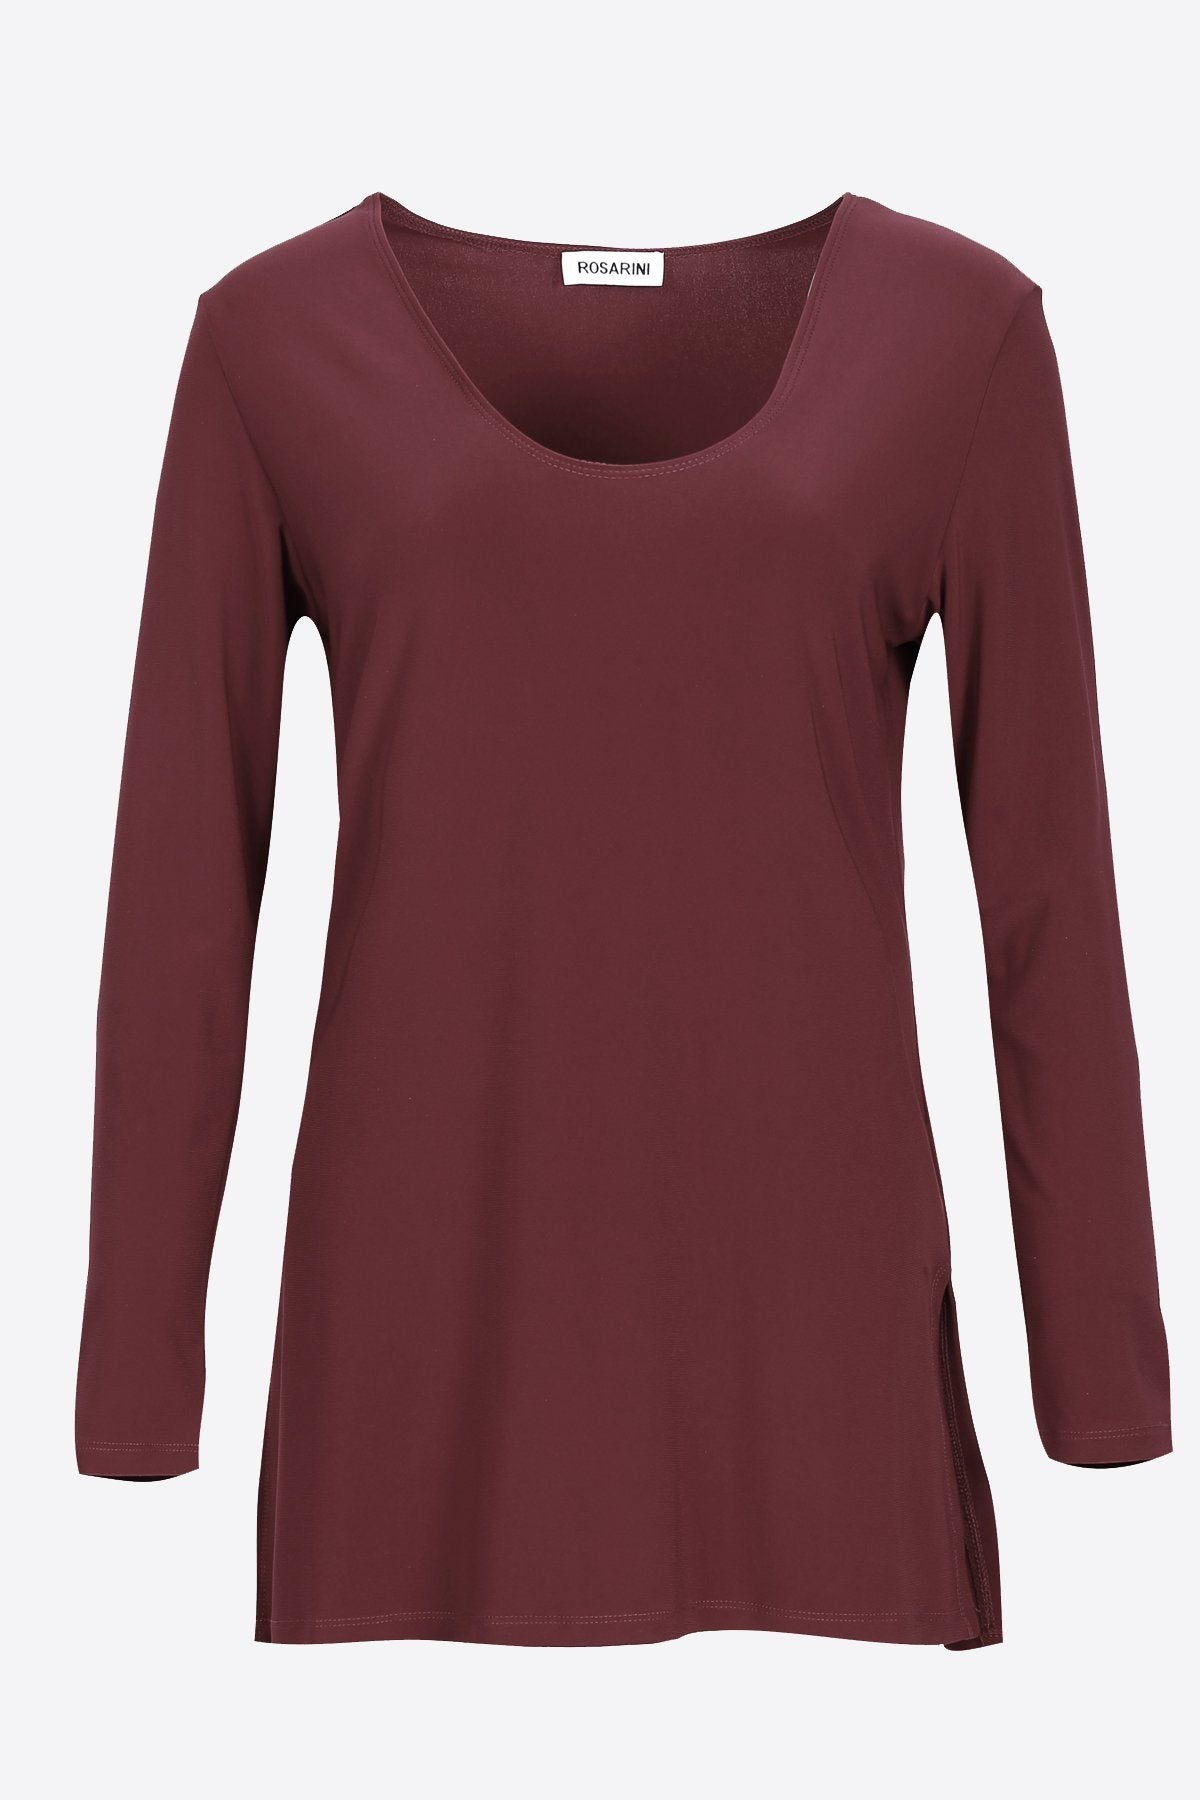 Long Sleeve Side Splits V-Neck Top chestnut